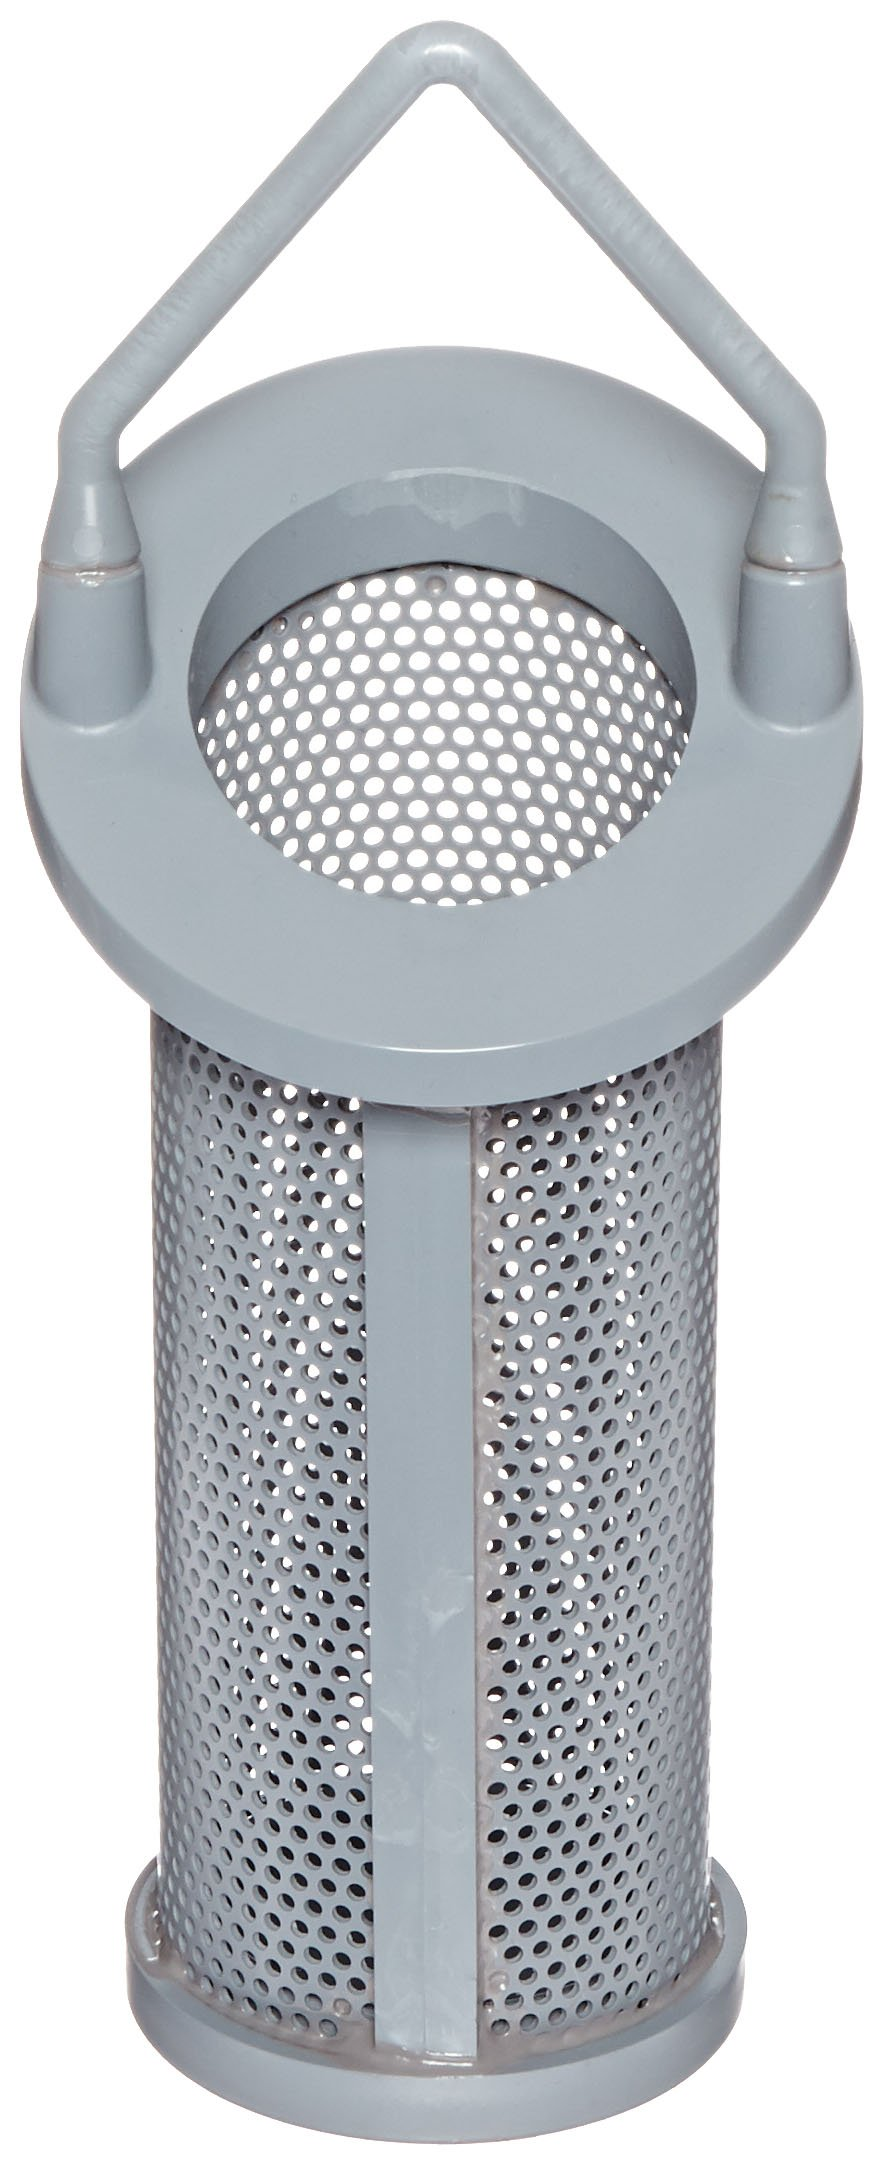 Hayward BS22001/8 Series SB and DB Extra/Replacement Basket for 1-1/4'', 1-1/2'' and 2'' Strainer, CPVC, 1/8'' Perforation by Hayward Flow Control